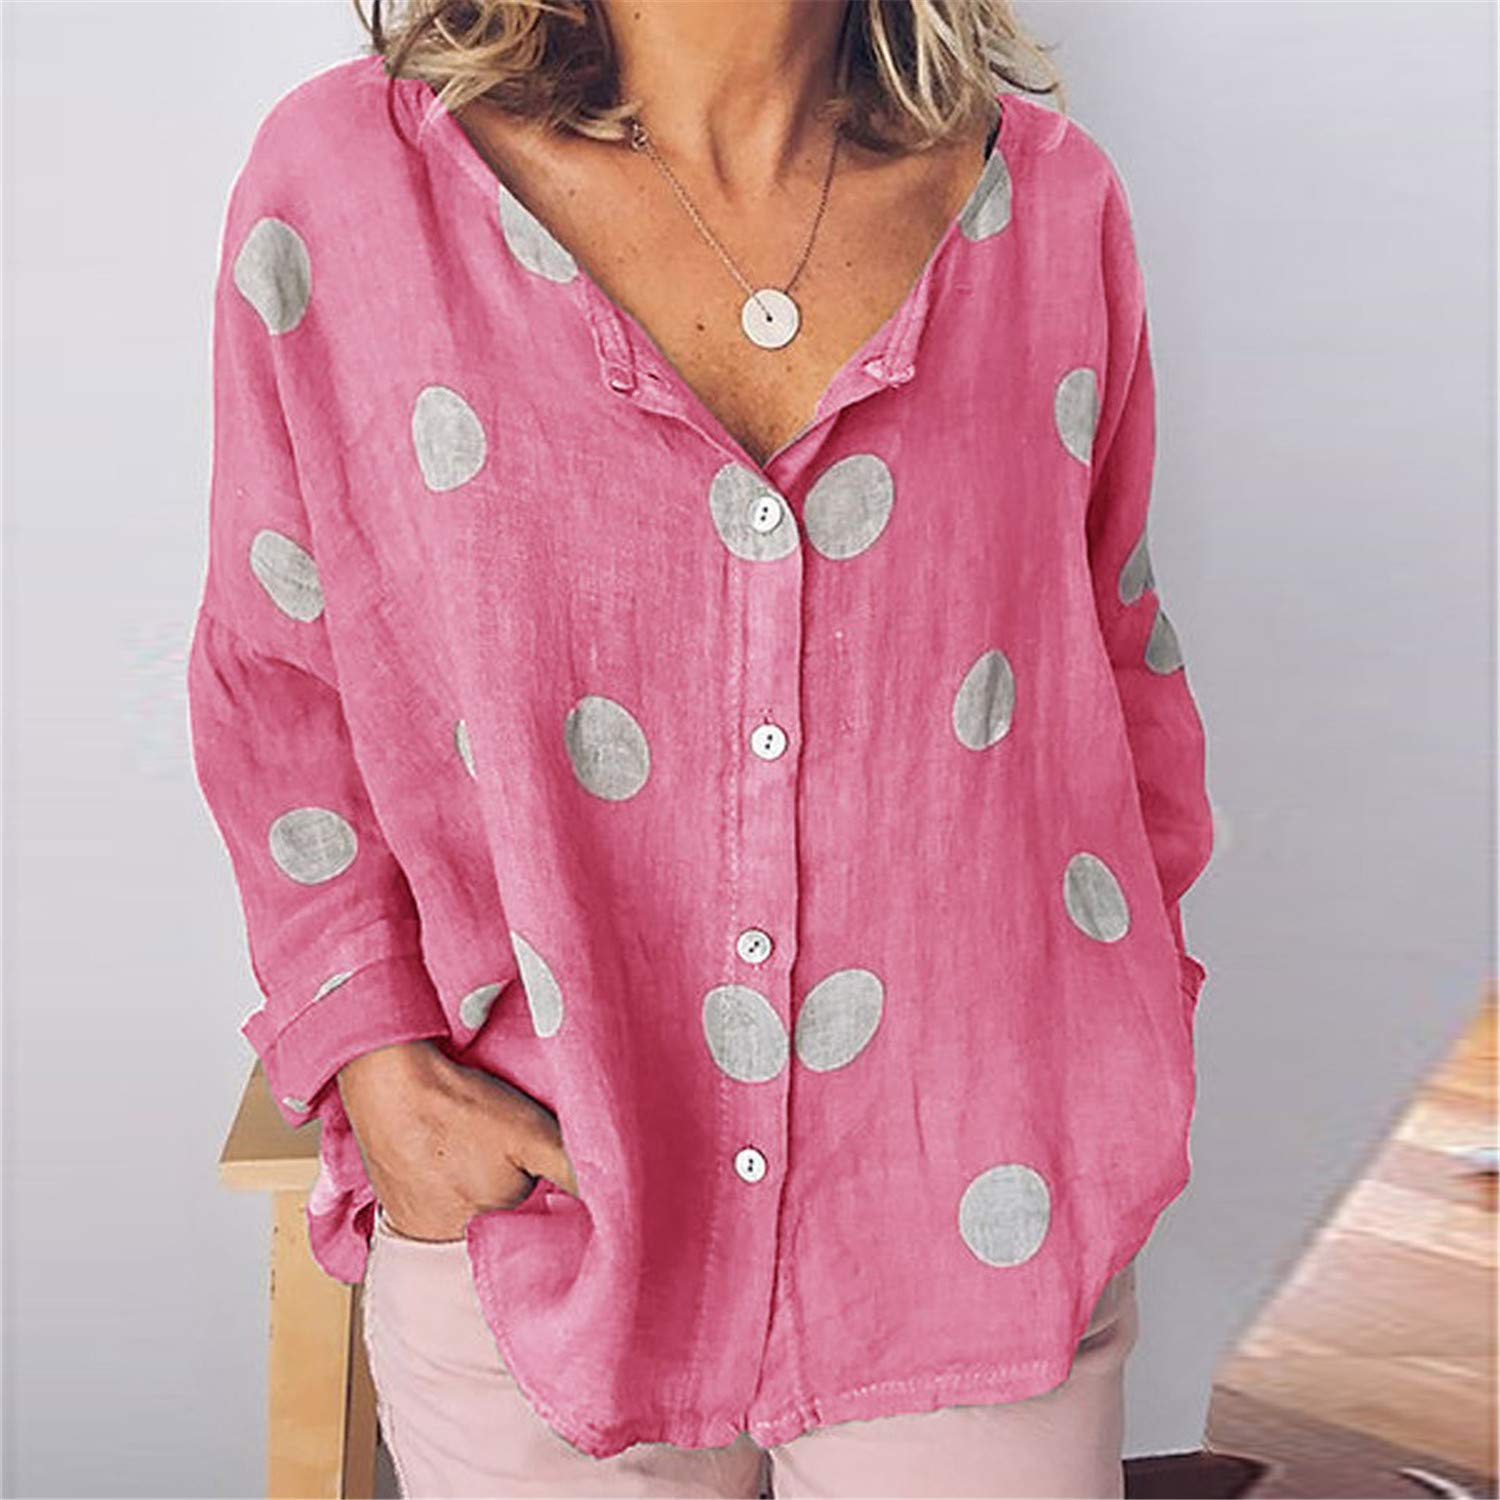 Londony ❤ Womens Button Down V Neck Polka Dot Shirts Loose Fitting Bat Short Sleeve Henley Shirts Front Tie Tops